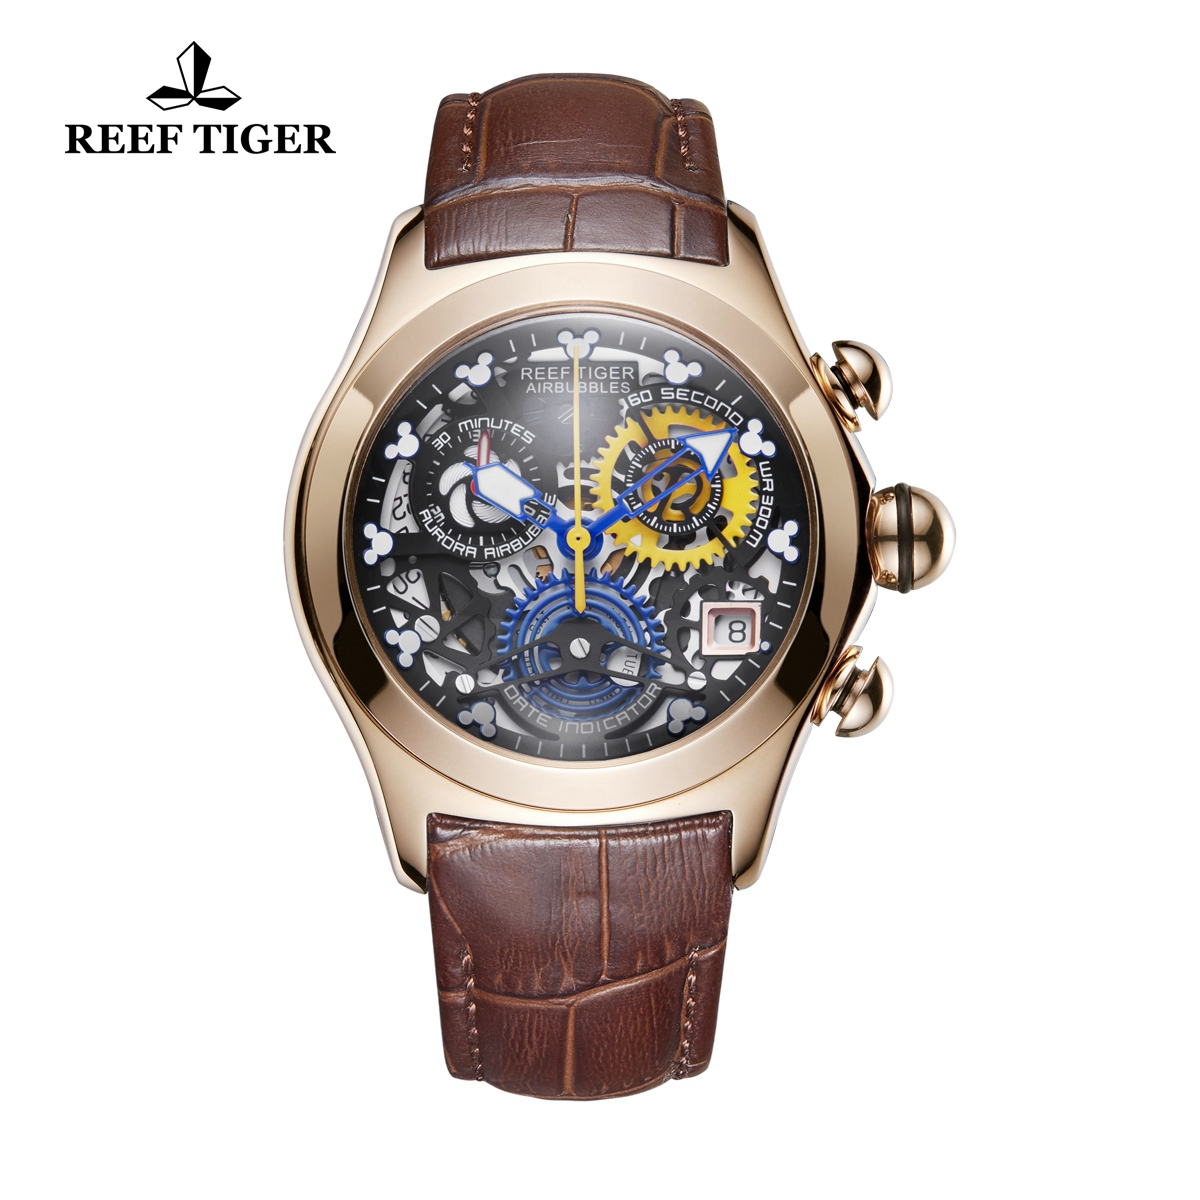 Reef Tiger Air Bubble Casual Watches Quartz Watch Rose Gold Case Leather Strap RGA7181